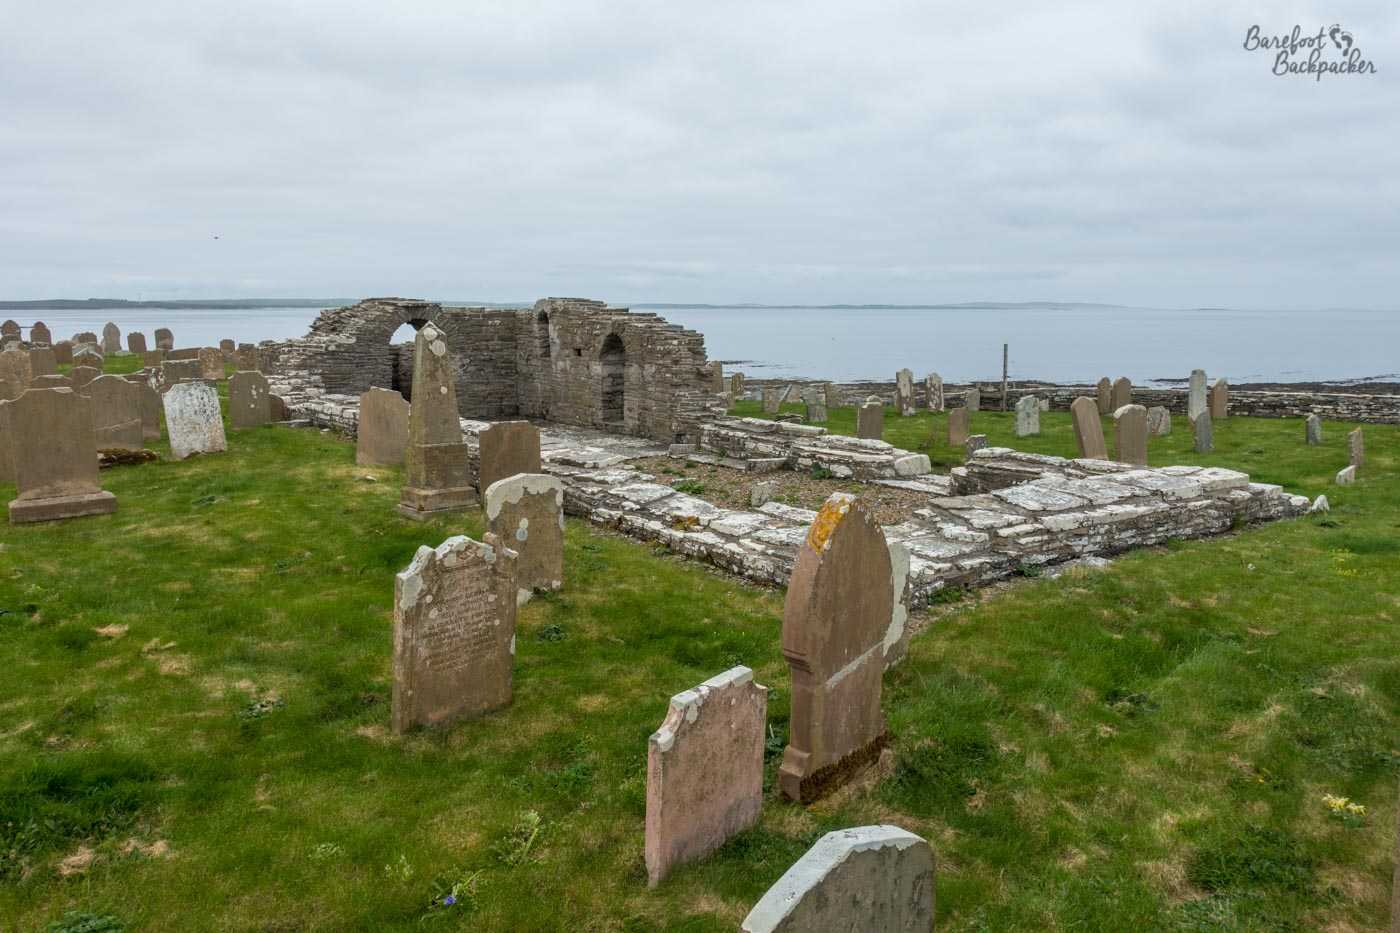 The graveyard and ruins of Cross Kirk, on Westray. The graves are old stone, and pockmarked with … guano, let's say guano. The church itself is little more than a rectangle of piled stone marginally higher than the surrounding graveyard, inside which is a gravel floor. At one end of the church are structurally taller remains, big enough to have a couple of archways visible. Behind is the sea.